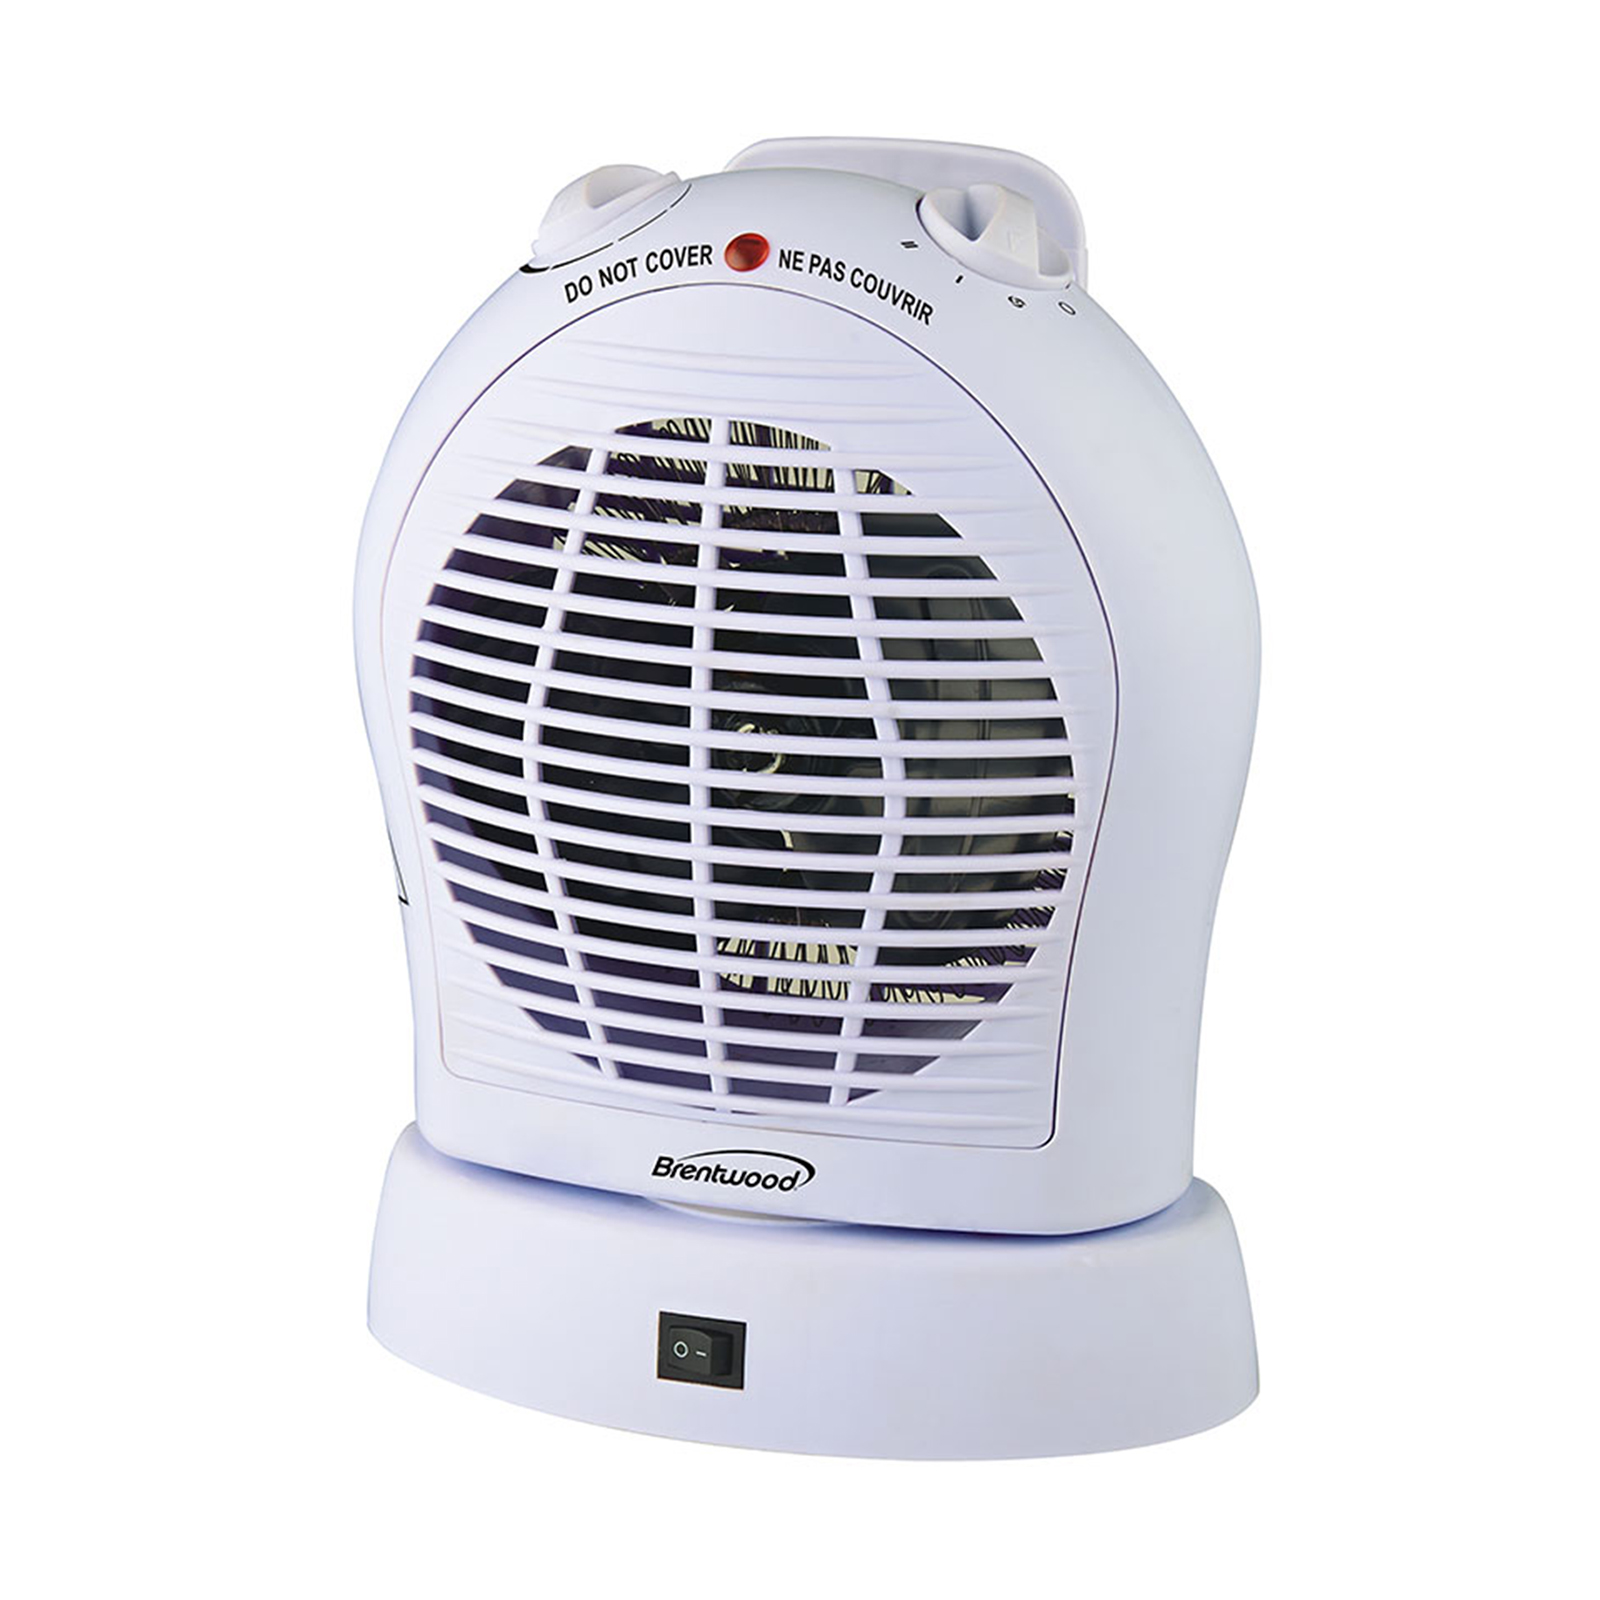 Brentwood 1500 Watt Oscillating Fan Heater